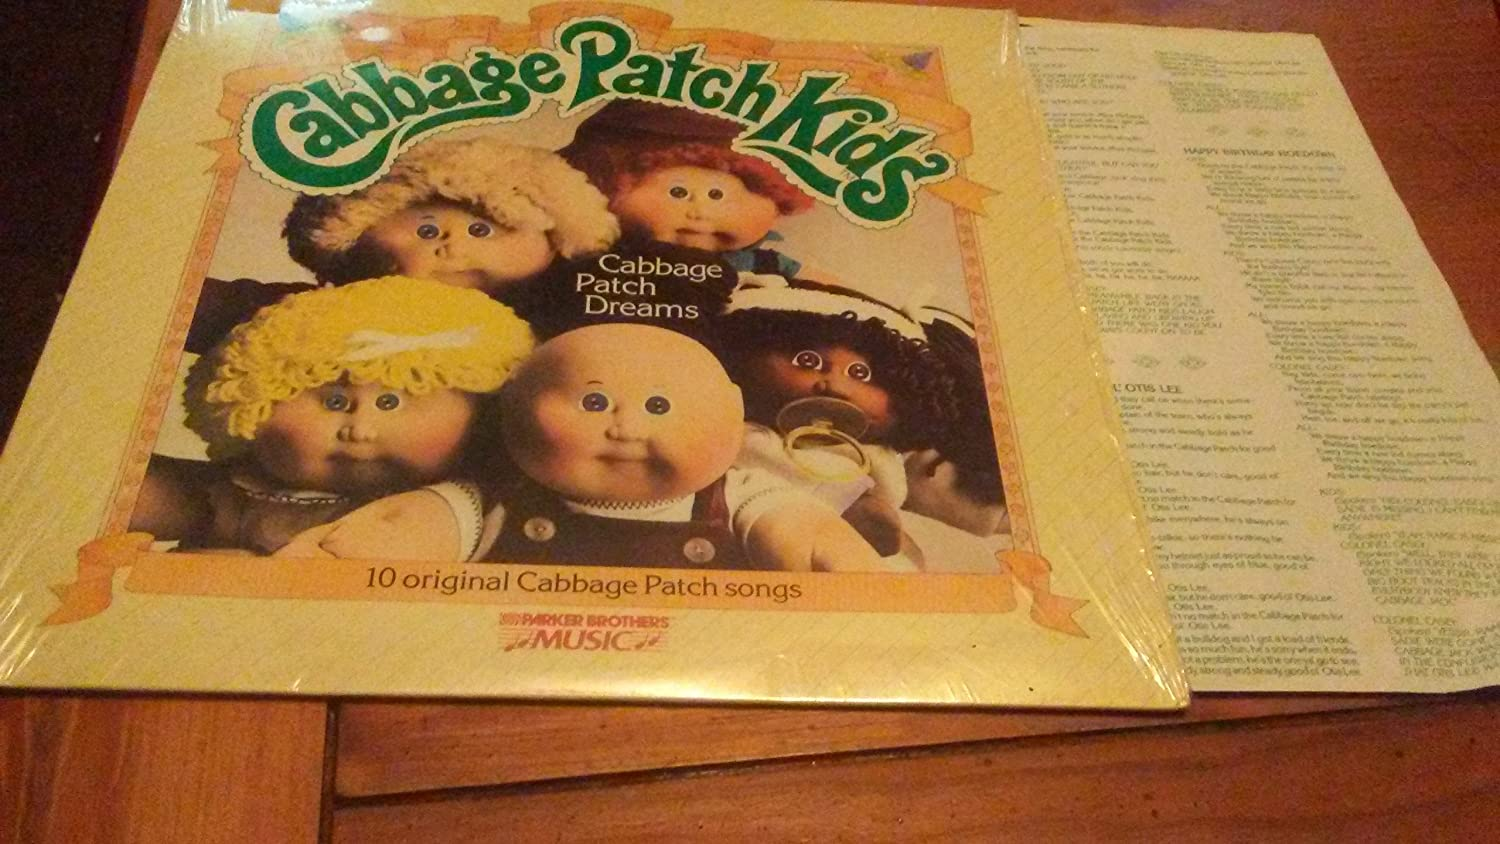 Cabbage patch kids run run run youtube.